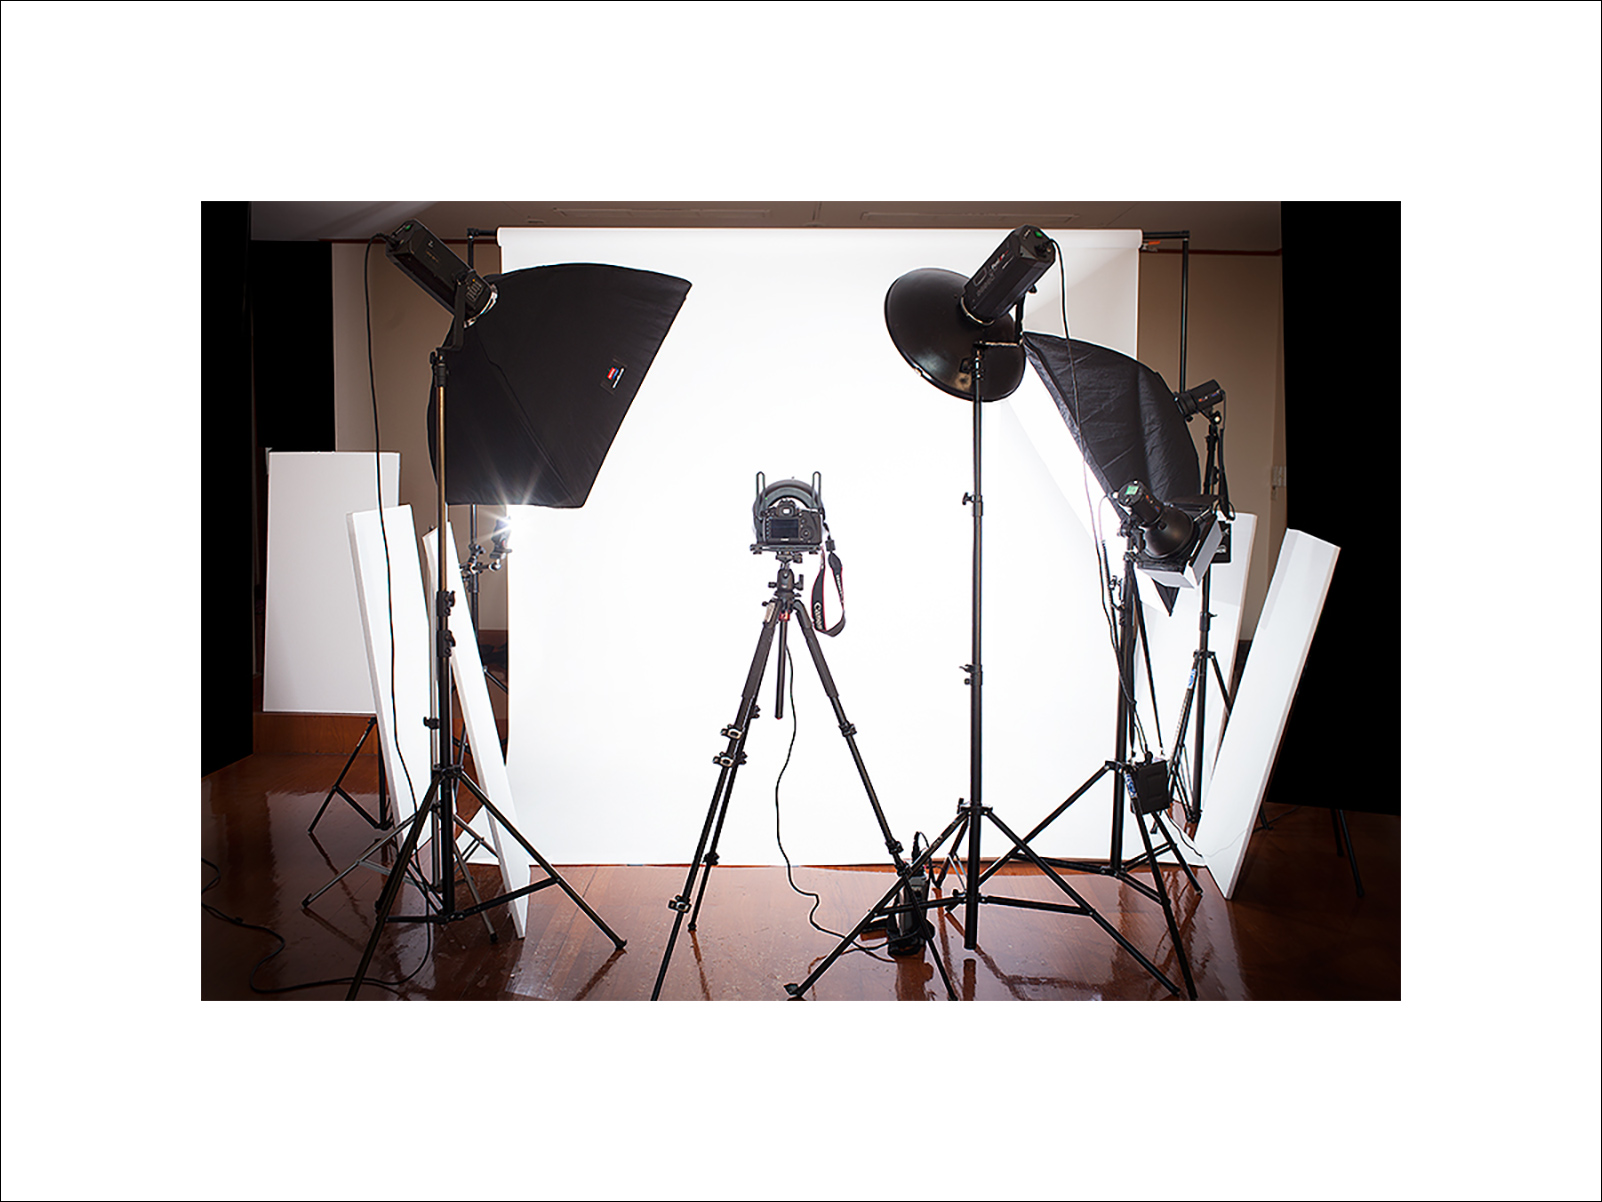 Studio setup featuring, ring flash, 6 lights with all light shapers from beauty dishes to soft boxes, barn doors, grids etc...